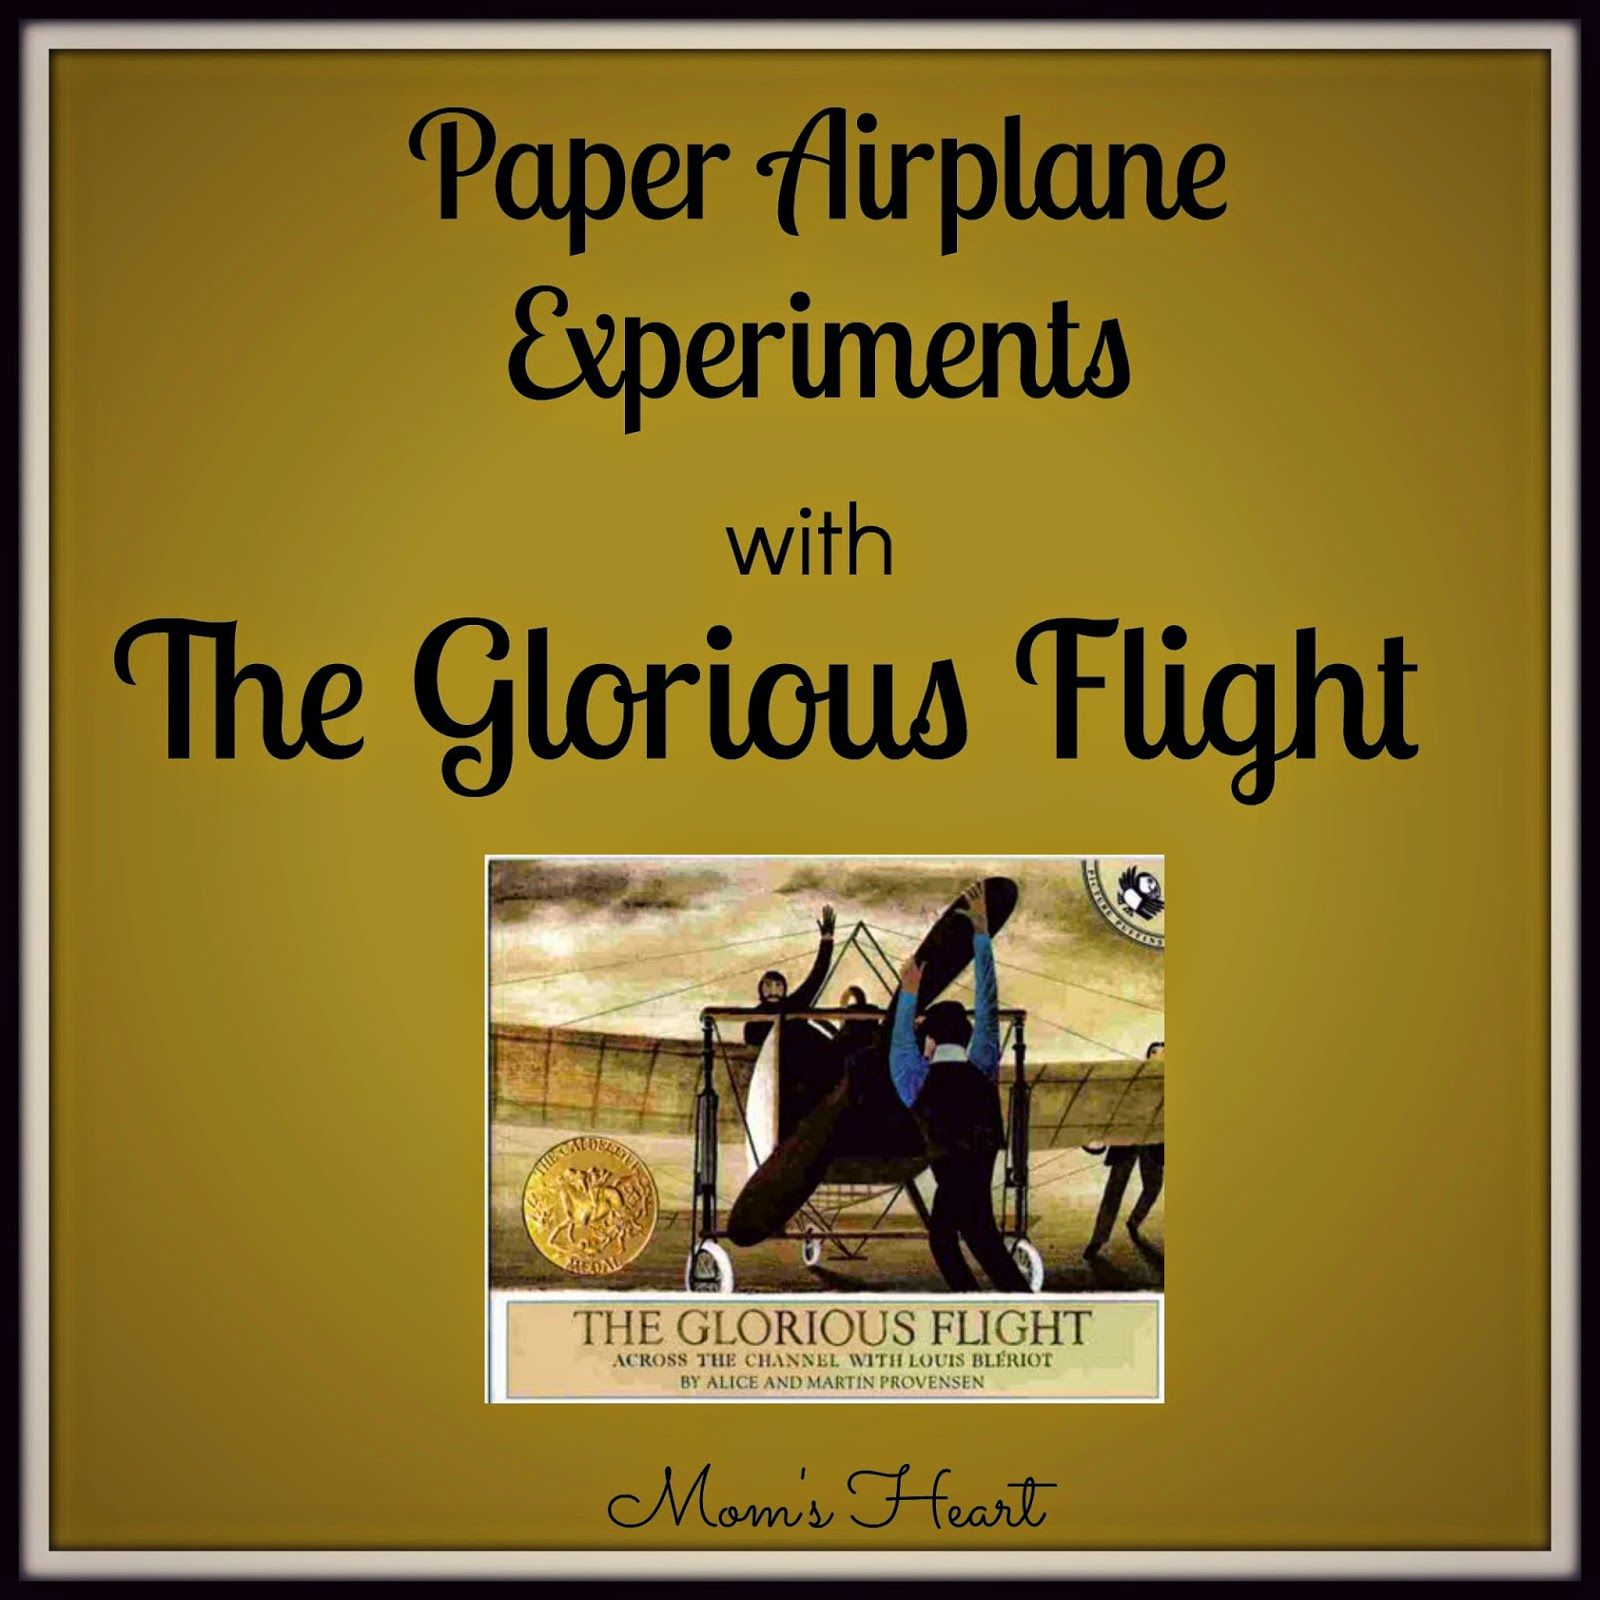 The Glorious Flight And Paper Airplane Experiments